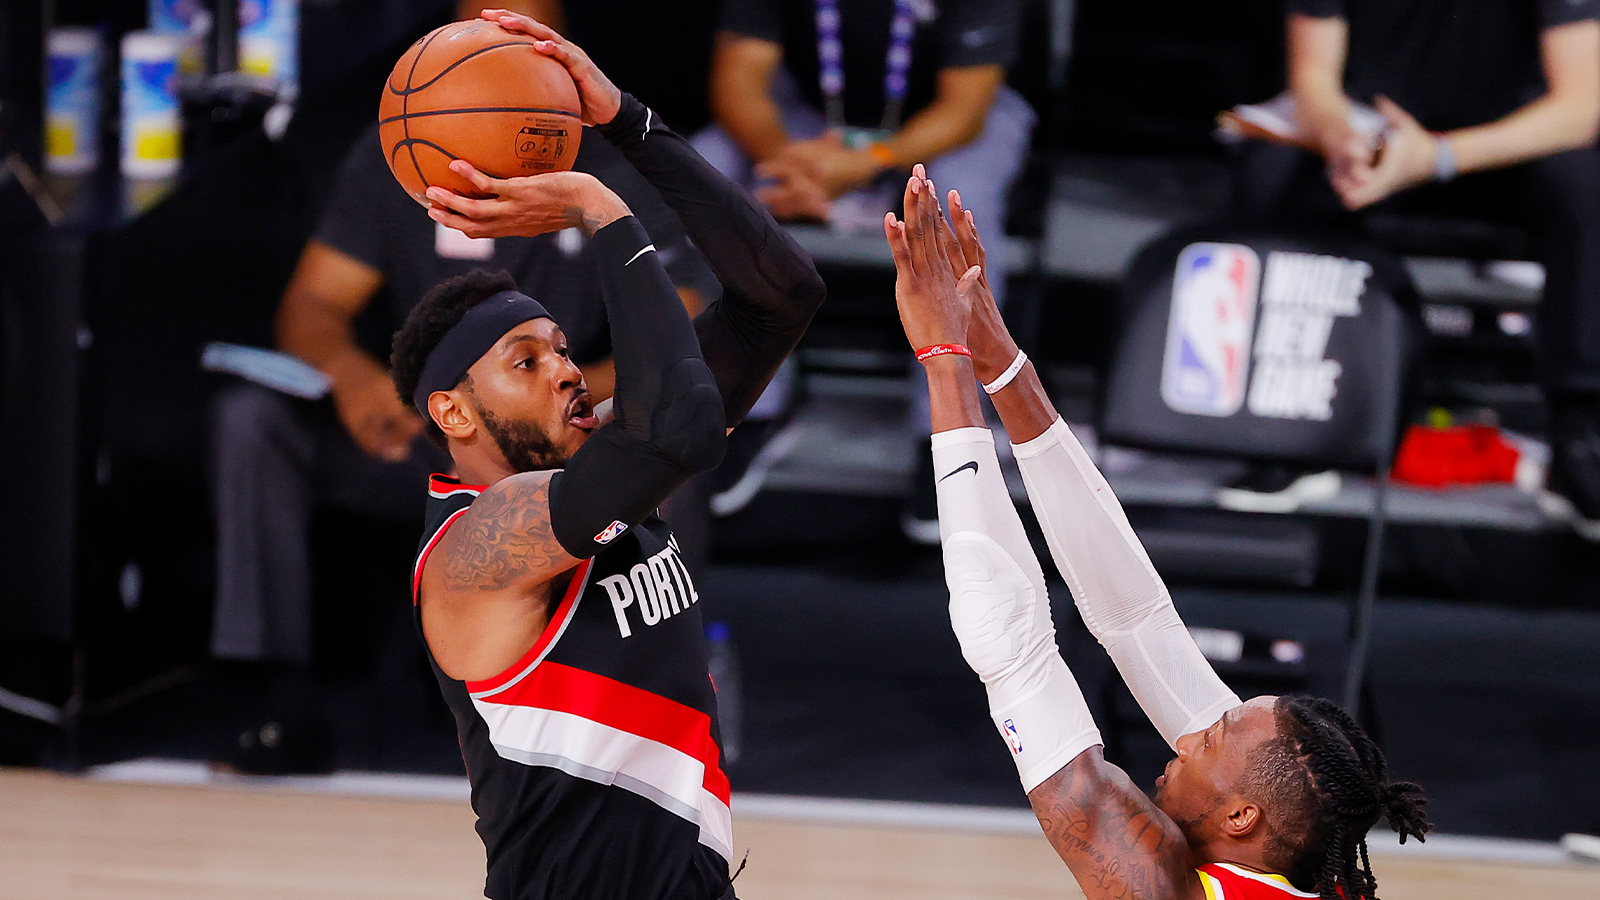 Melo Steals The Show For Portland